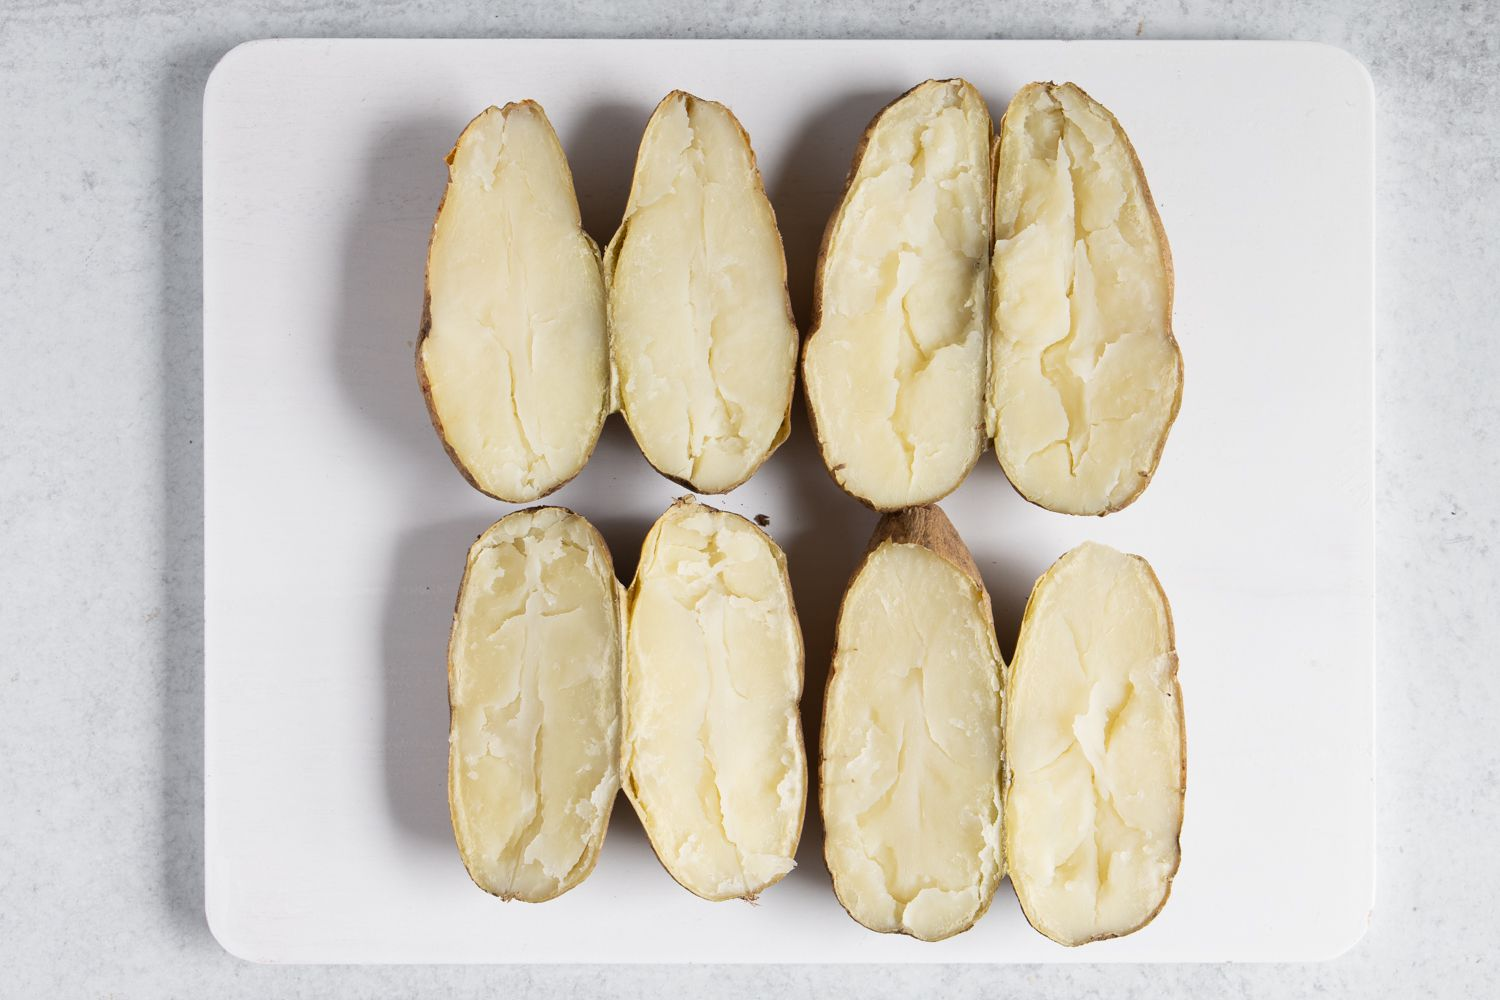 potatoes cut in half lengthwise